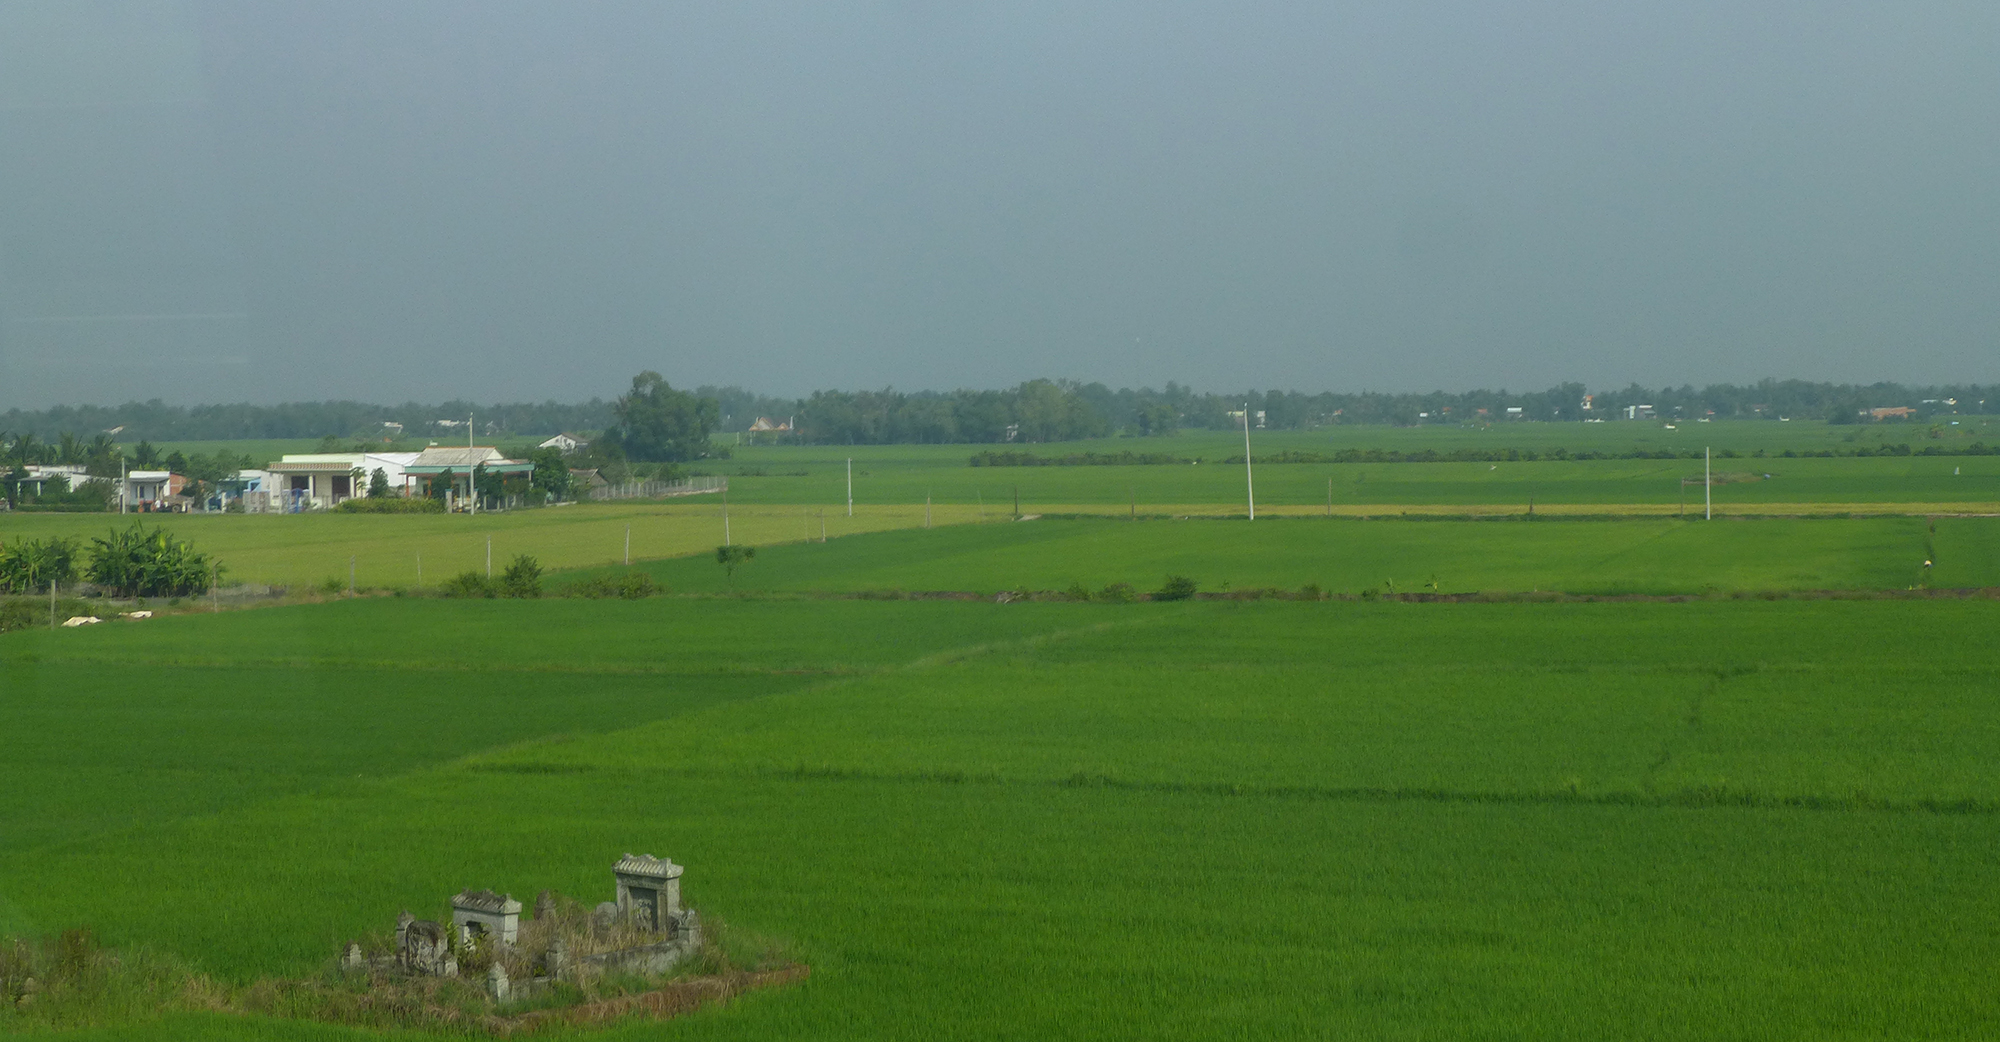 Rice fields with a memorial for a farmer that most likely spent his life working the land. Copyright: Erica Gies.